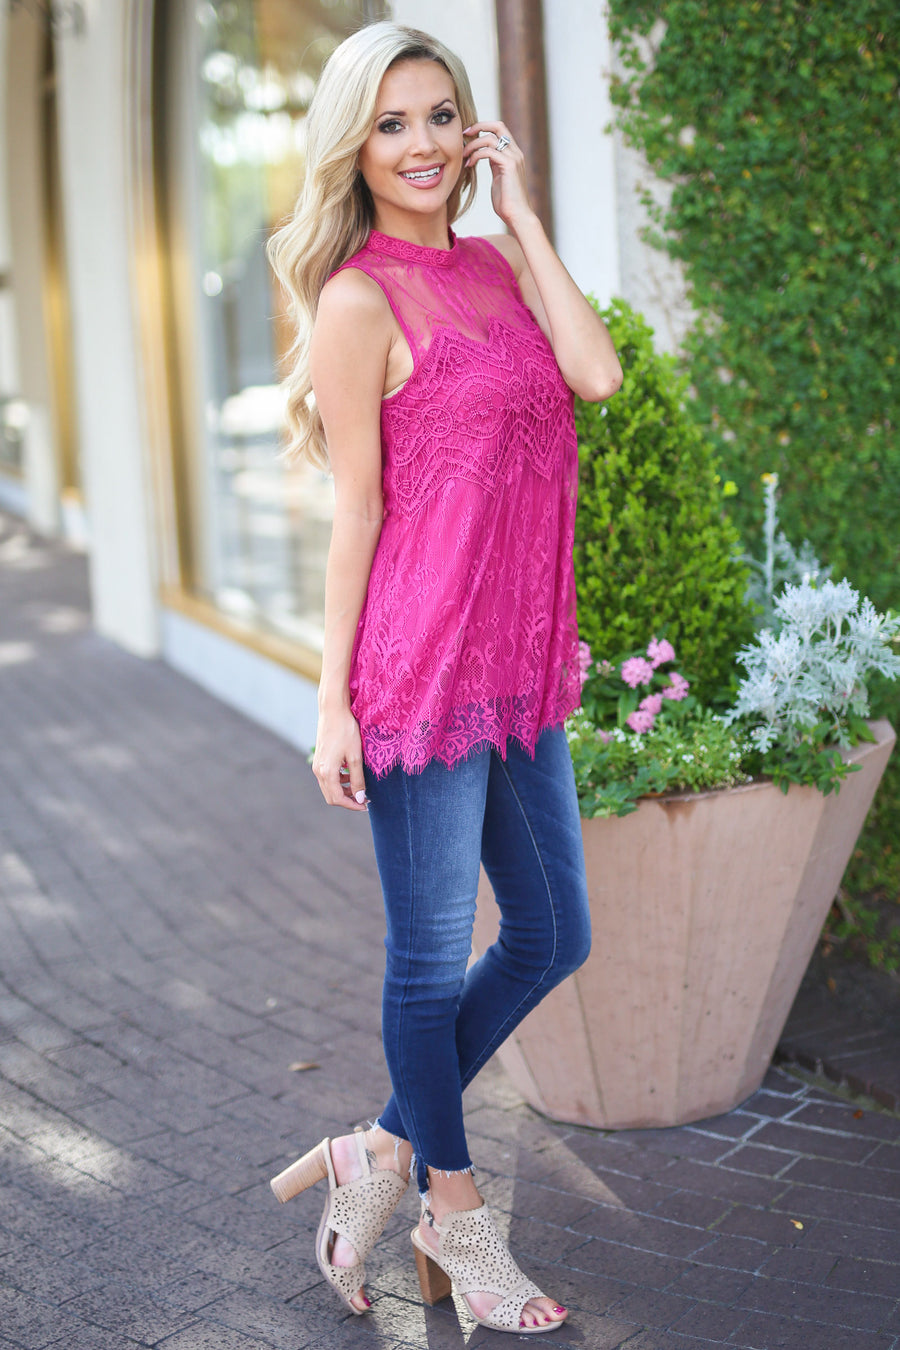 Sunshine on the Mind Top - Fuchsia lace sleeveless top, front, Closet Candy Boutique